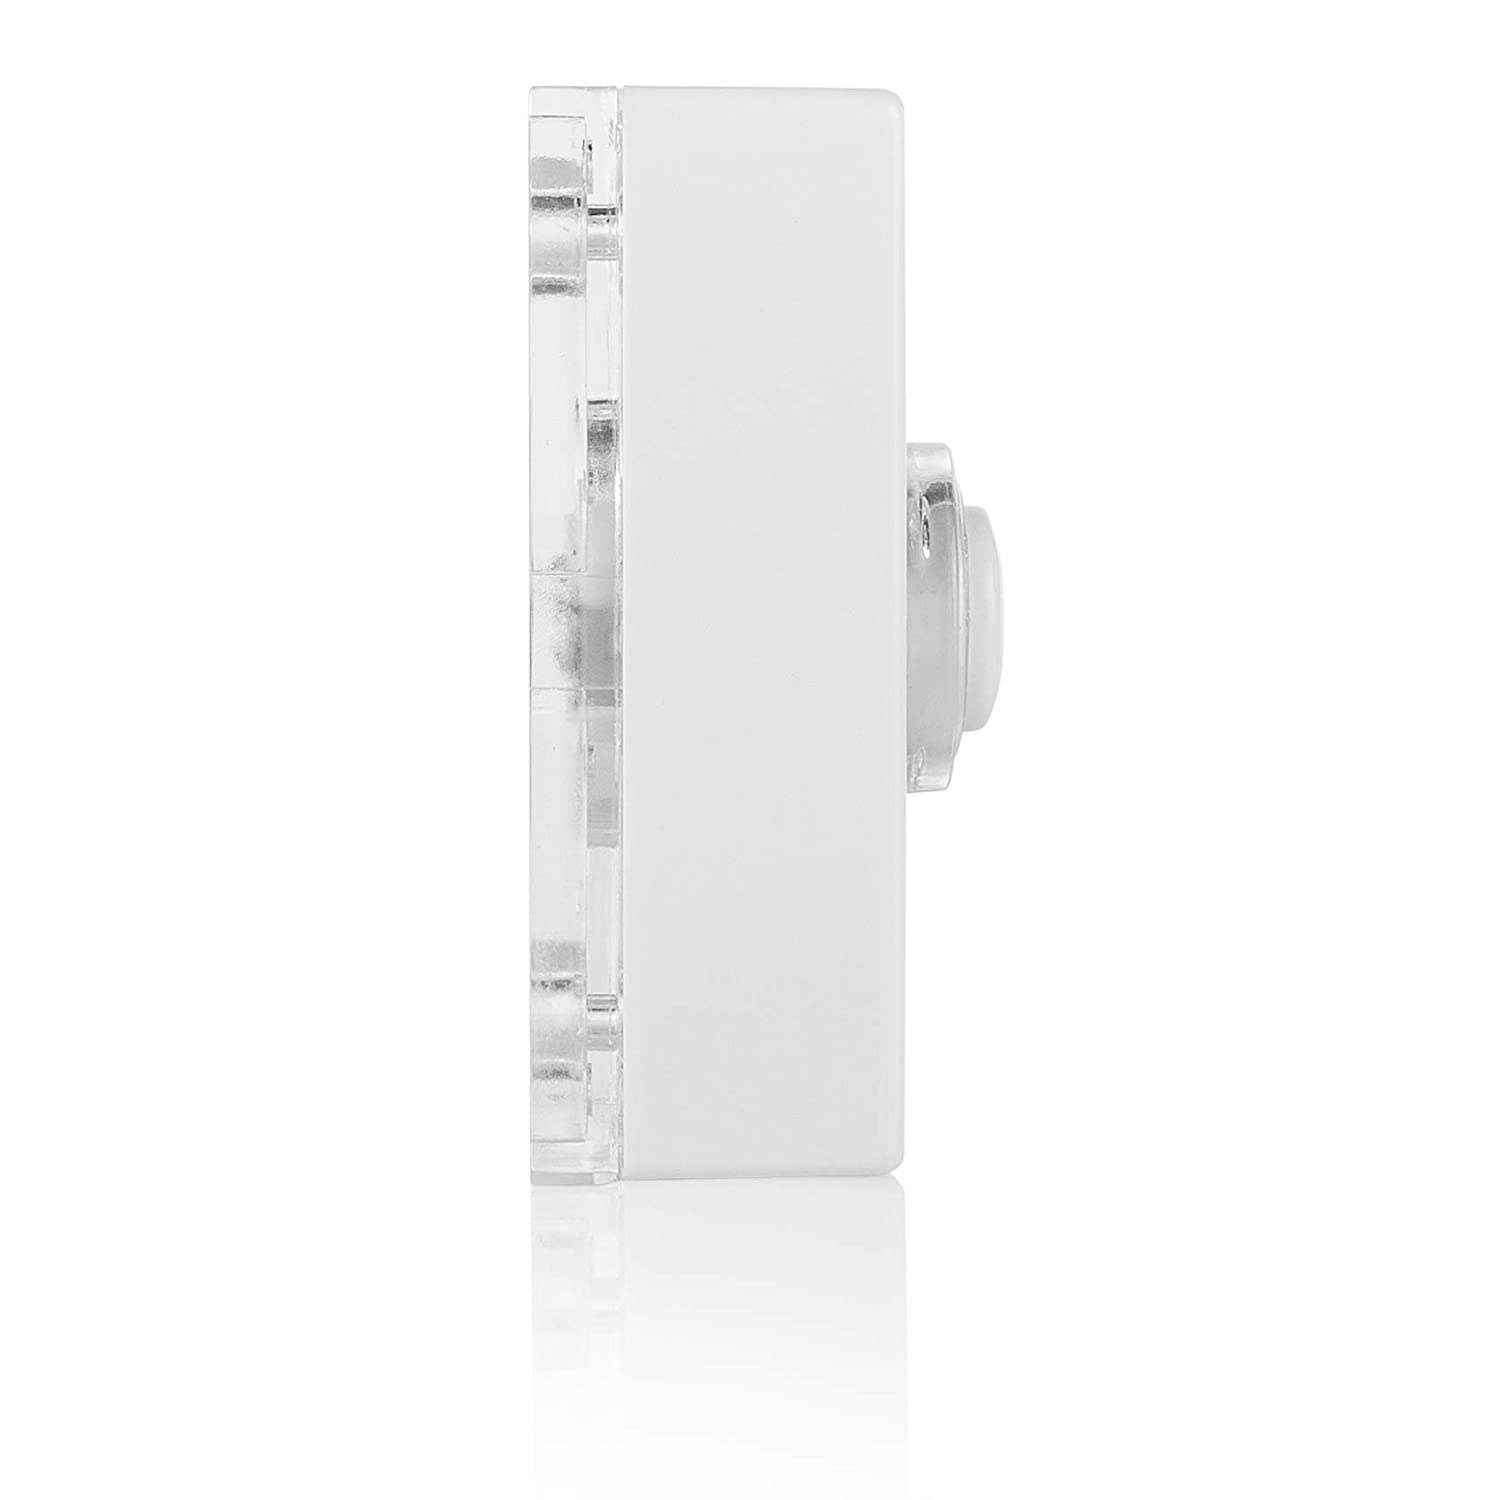 White Illuminated push button Byron 7730 wired bell push